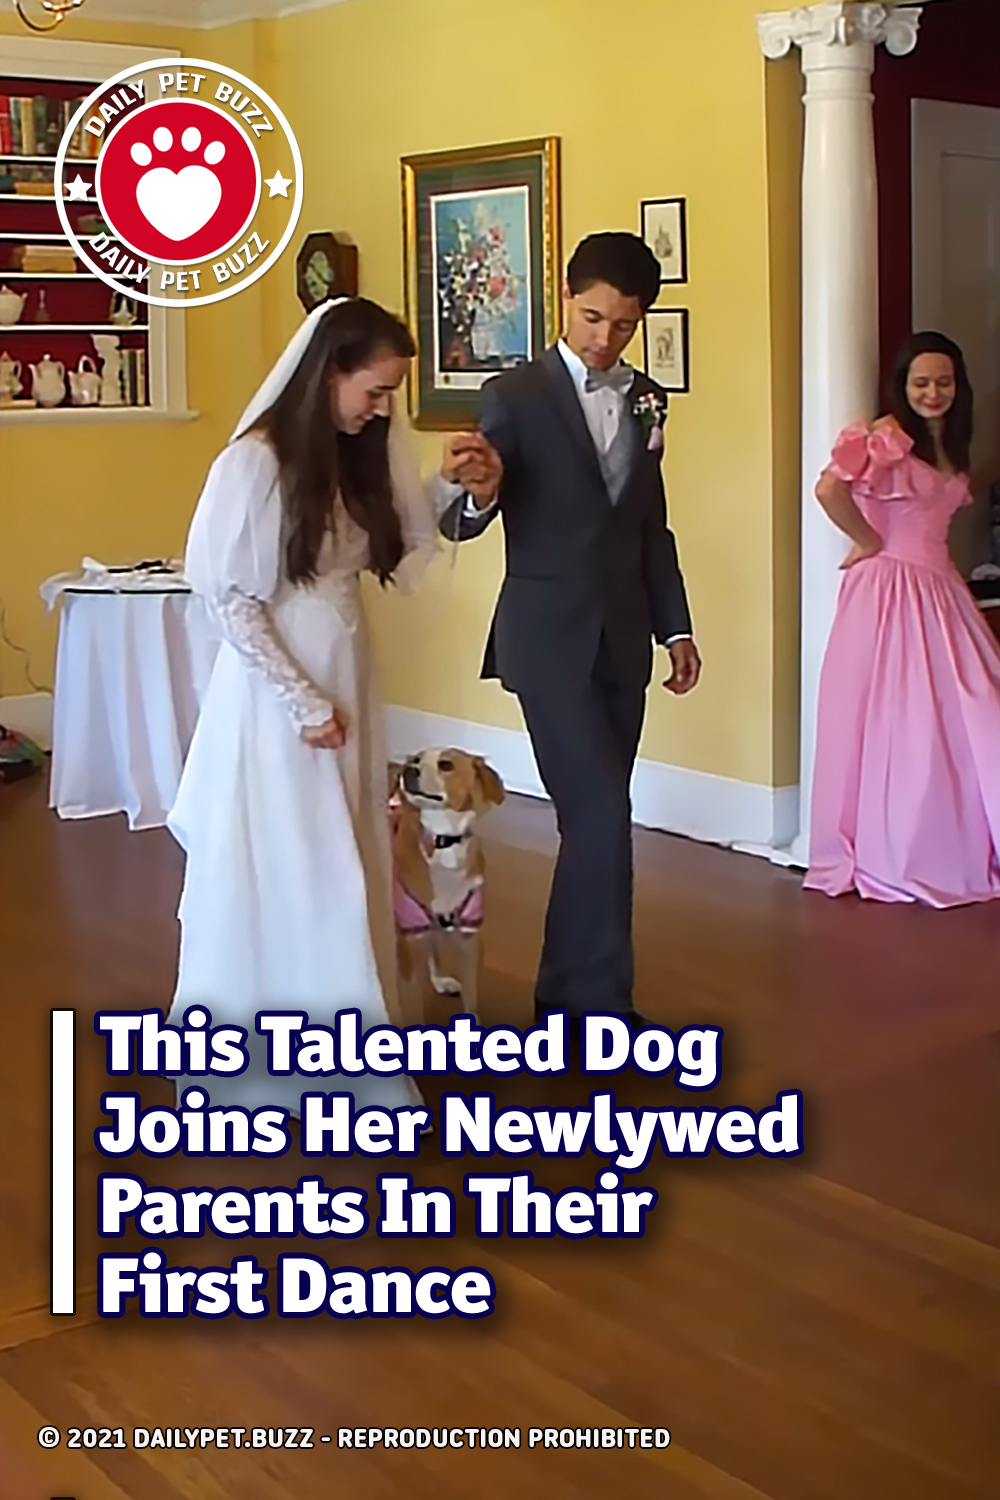 This Talented Dog Joins Her Newlywed Parents In Their First Dance